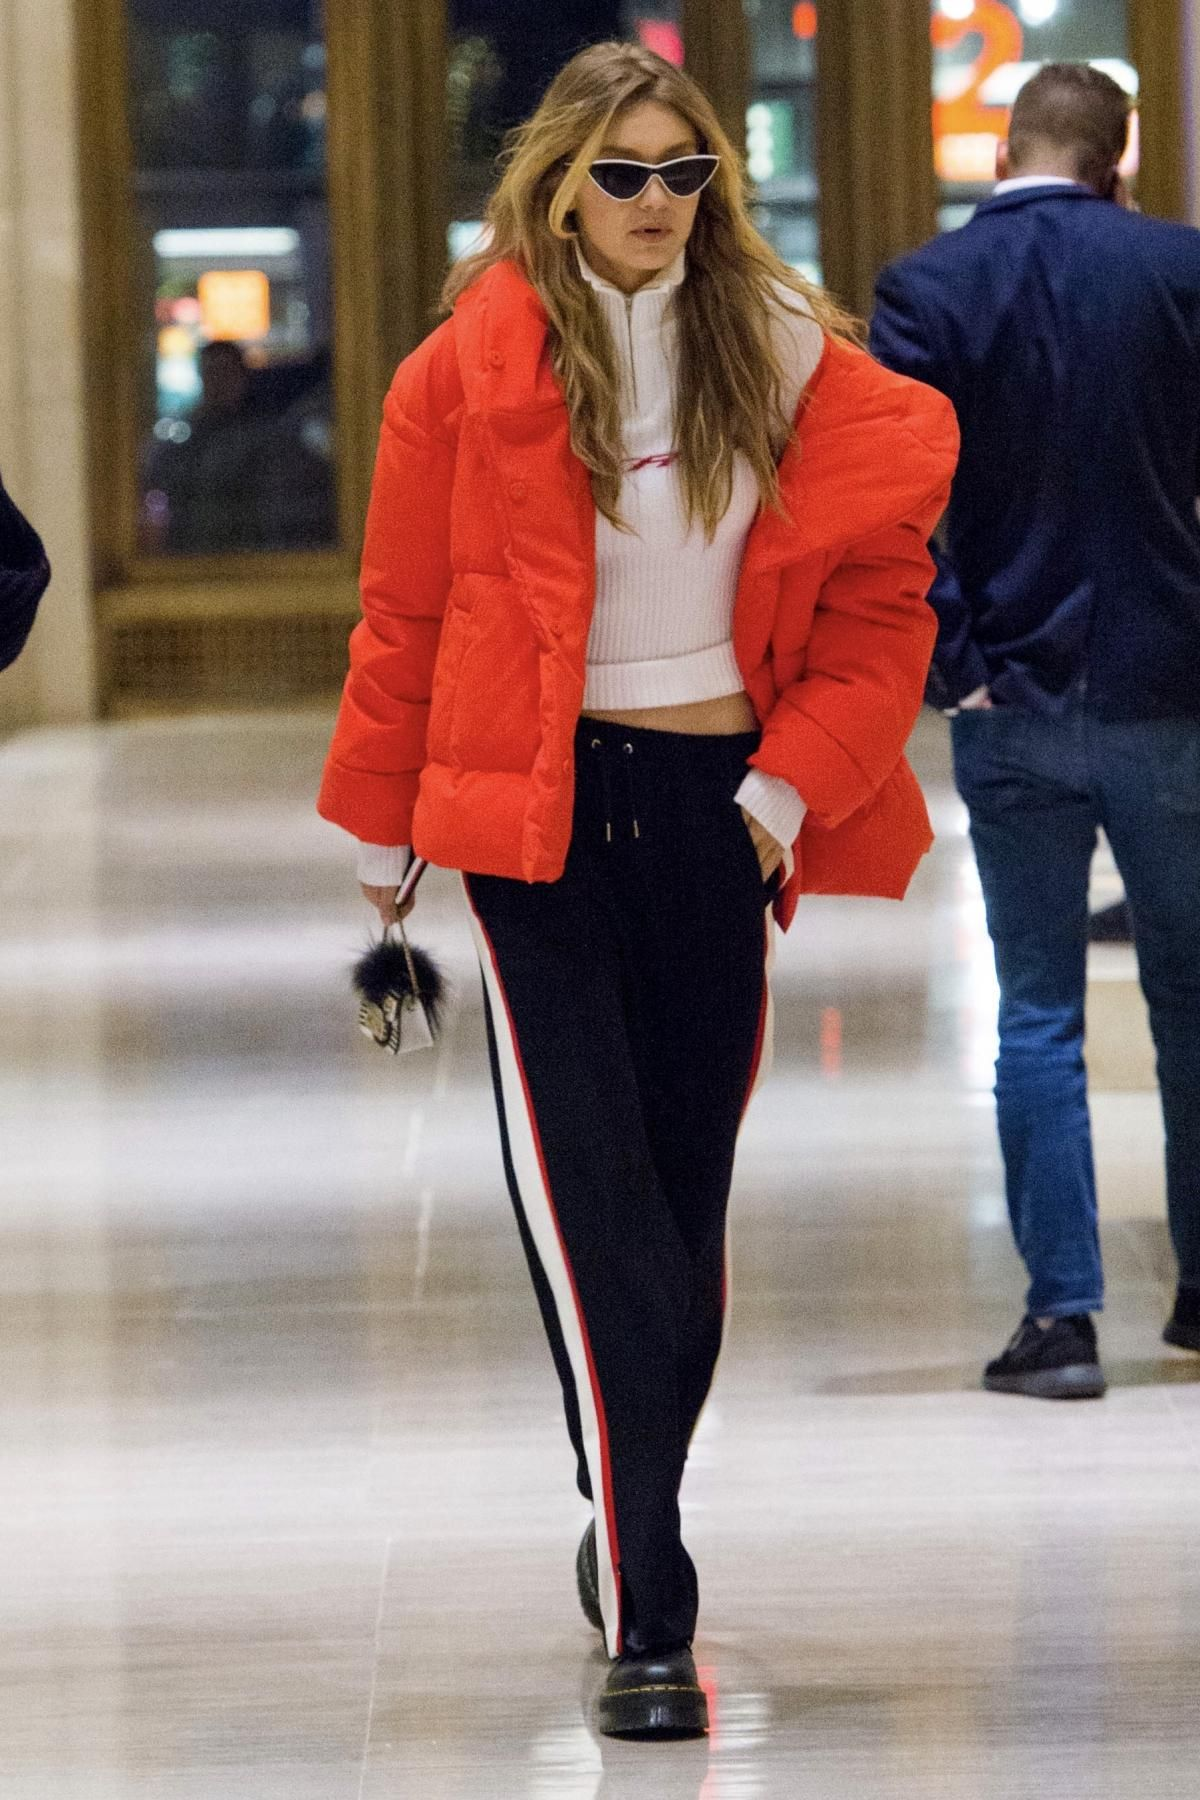 c817a3691f52 Gigi Hadid wearing Dr. Martens Lazy Oaf Jungle Boots, H&M Padded Jacket in  Bright Red, Le Specs X Adam Selman the Fugitive Sunglasses in White, Furla  ...